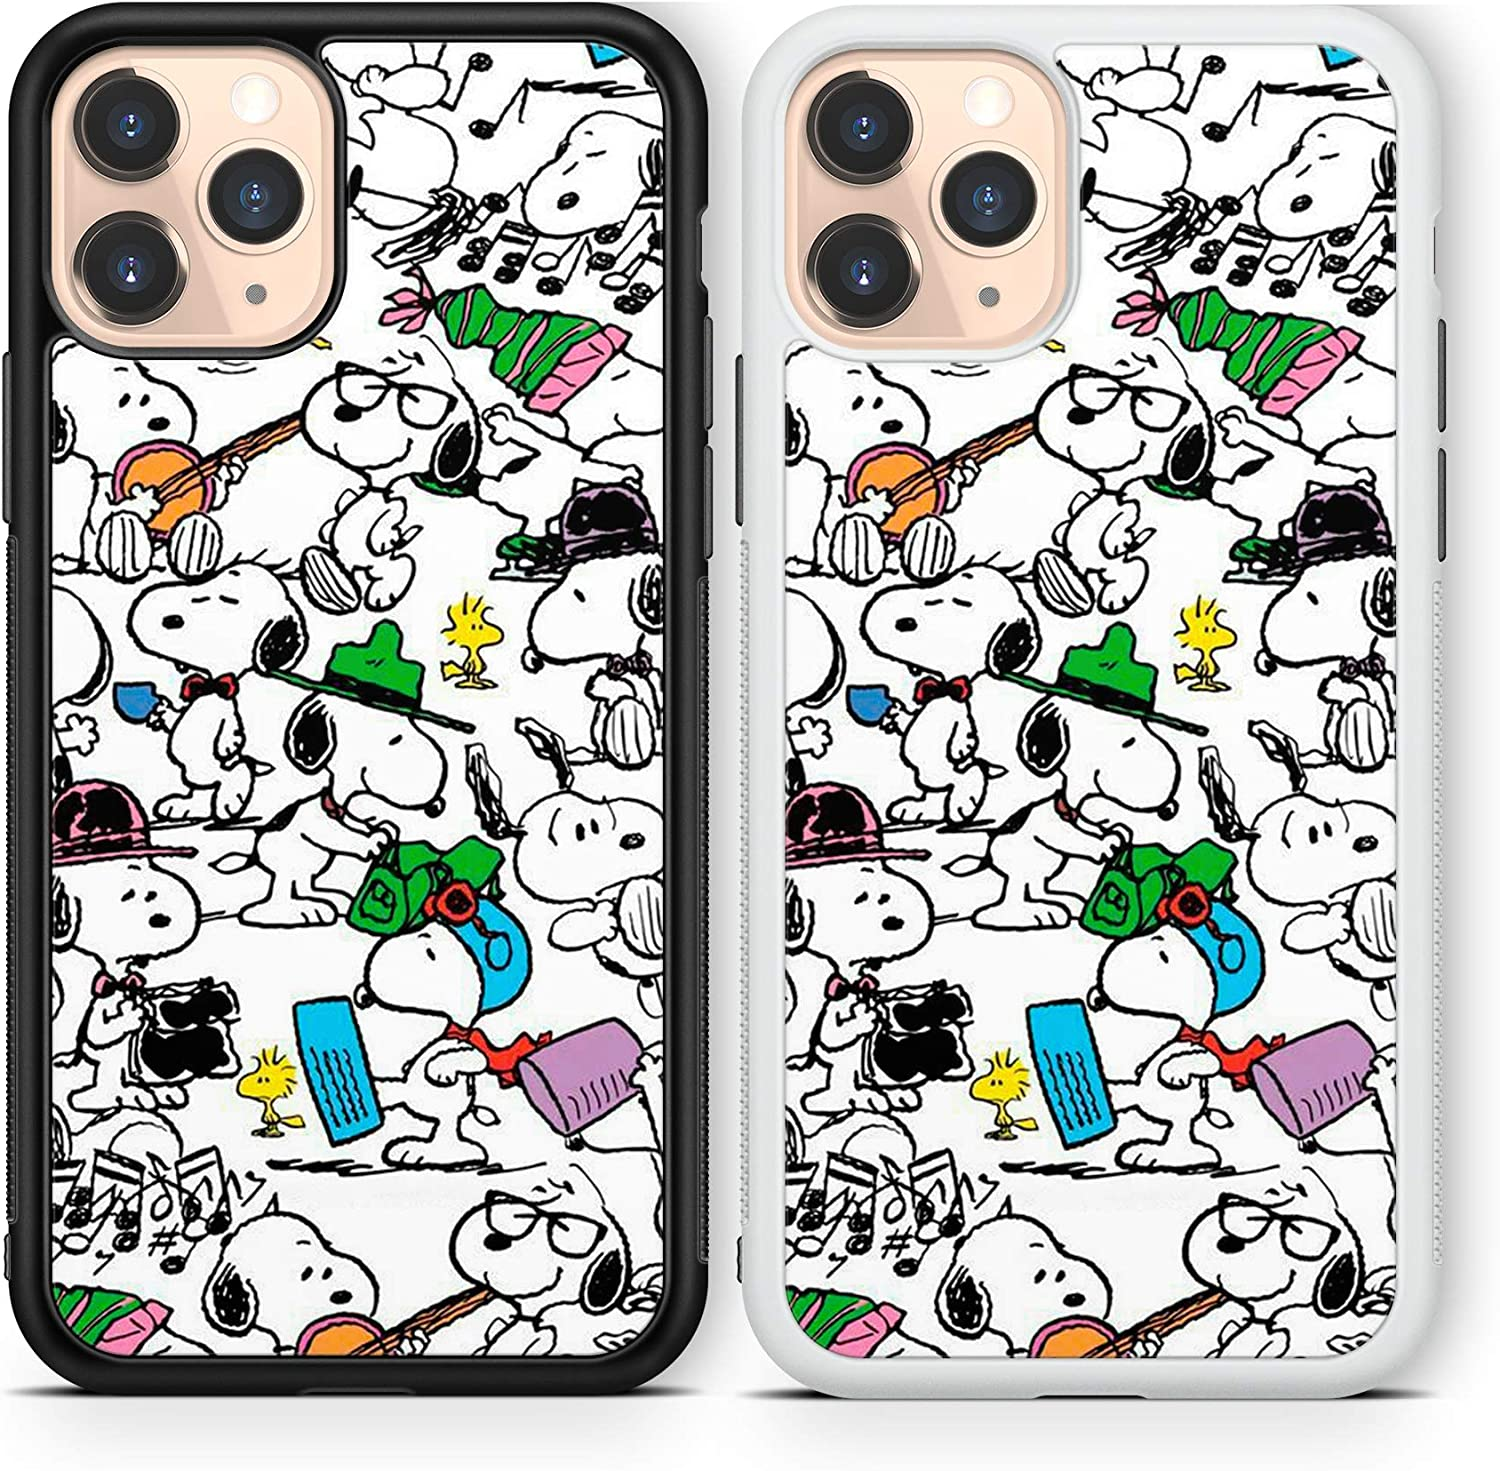 Snoopy case Compatible with iPhone 12 pro max Mini 11 XR X 7 8 SE Galaxy S20 Ultra S10 Note 10 20 TPU Cover SN173 (White, for iPhone 12/12 Pro)